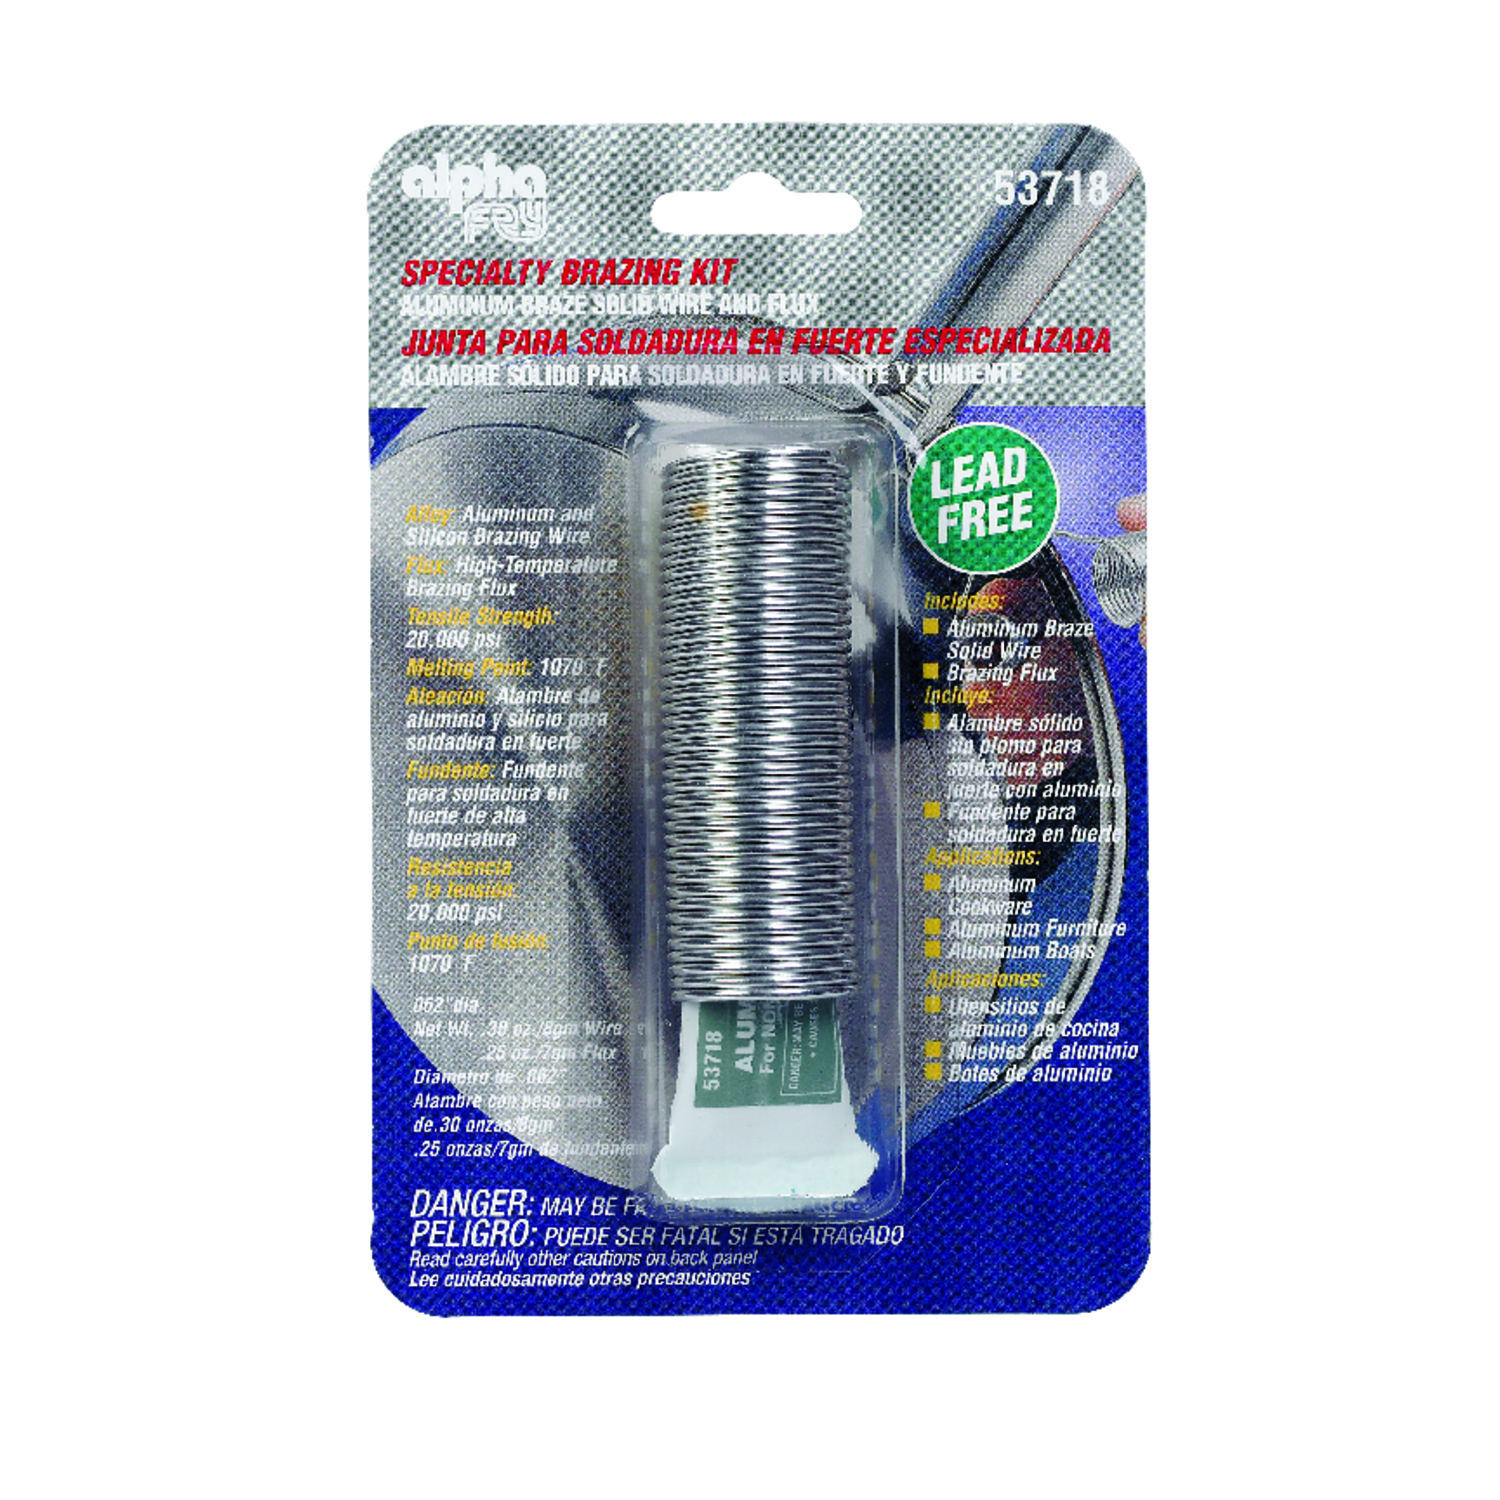 Alpha Fry  0.3 oz. Lead-Free Specialty Brazing Kit  0.062 in. Dia. Aluminum and Silicon Brazing  Alu